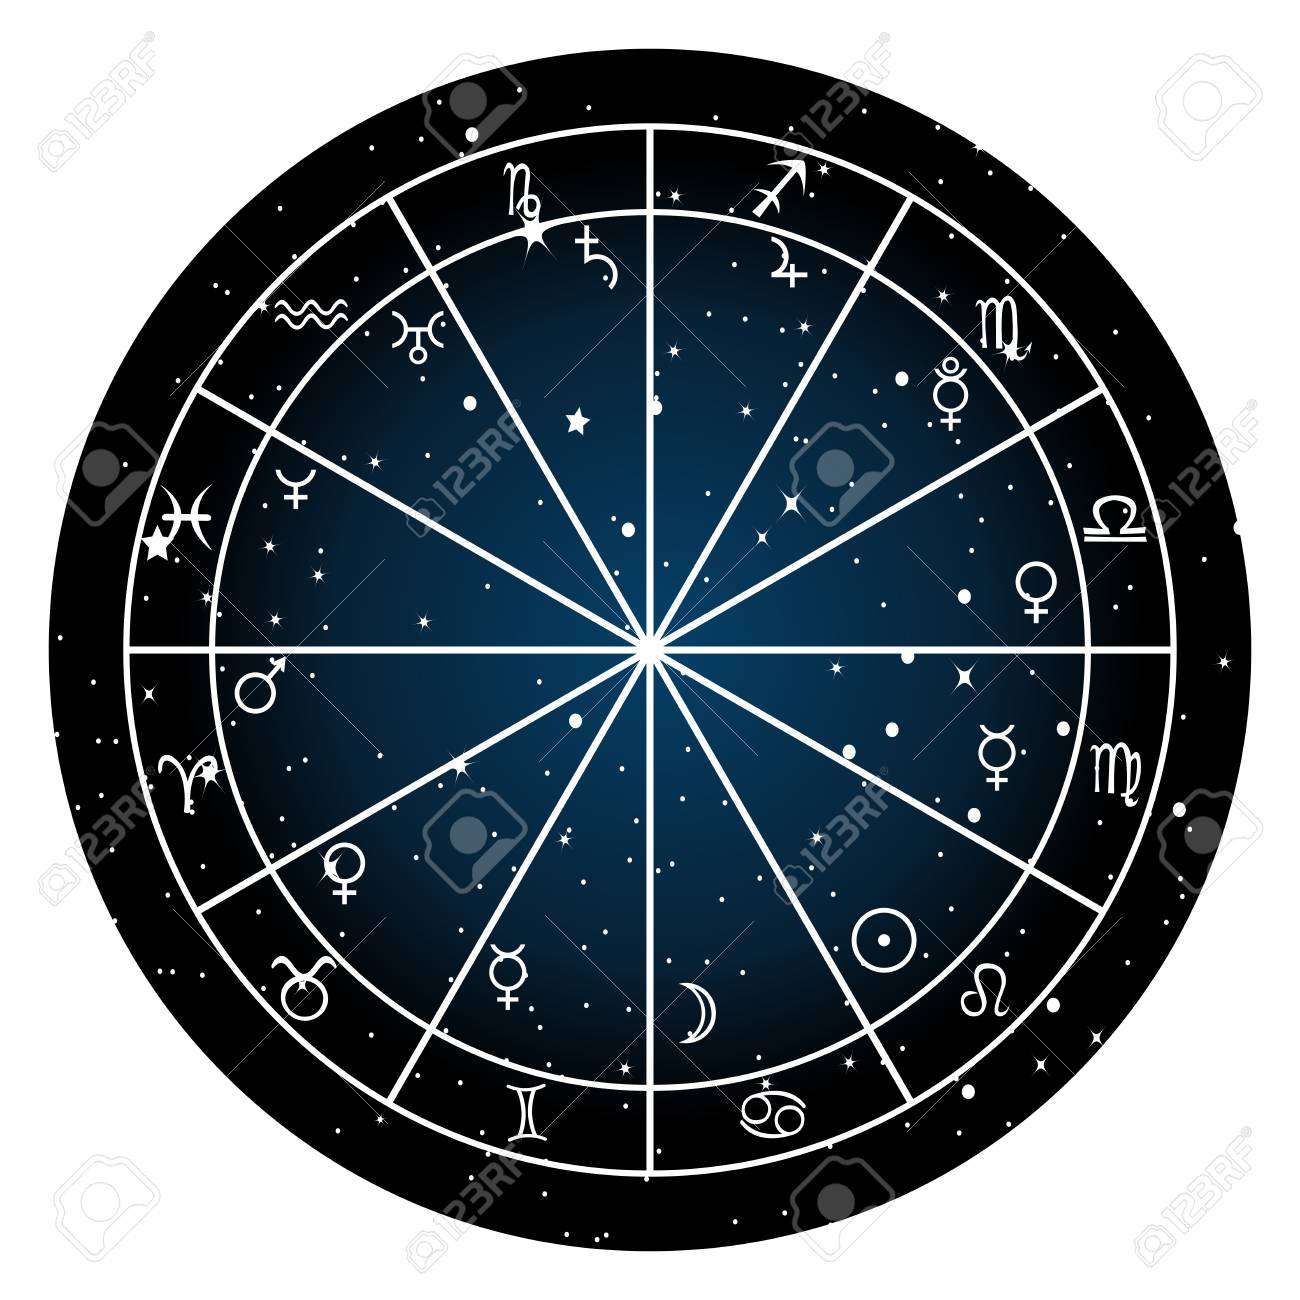 Astrology Zodiac With Natal Chart, Zodiac Signs And Planets ...